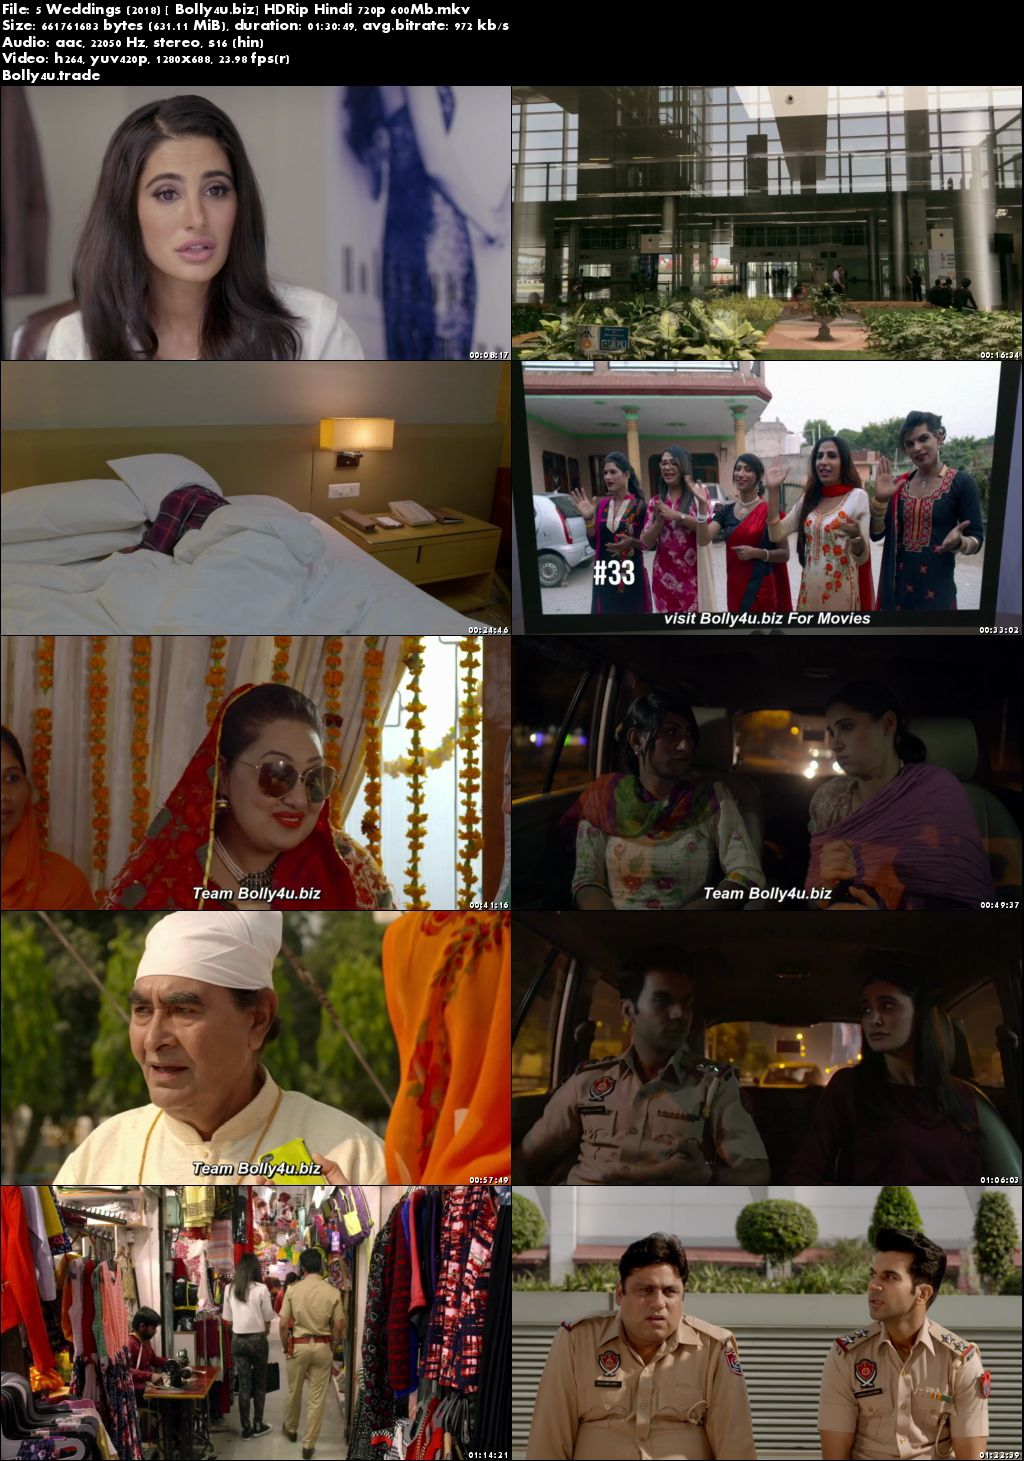 5 Weddings 2018 HDRip 600MB Full Hindi Movie Download 720p